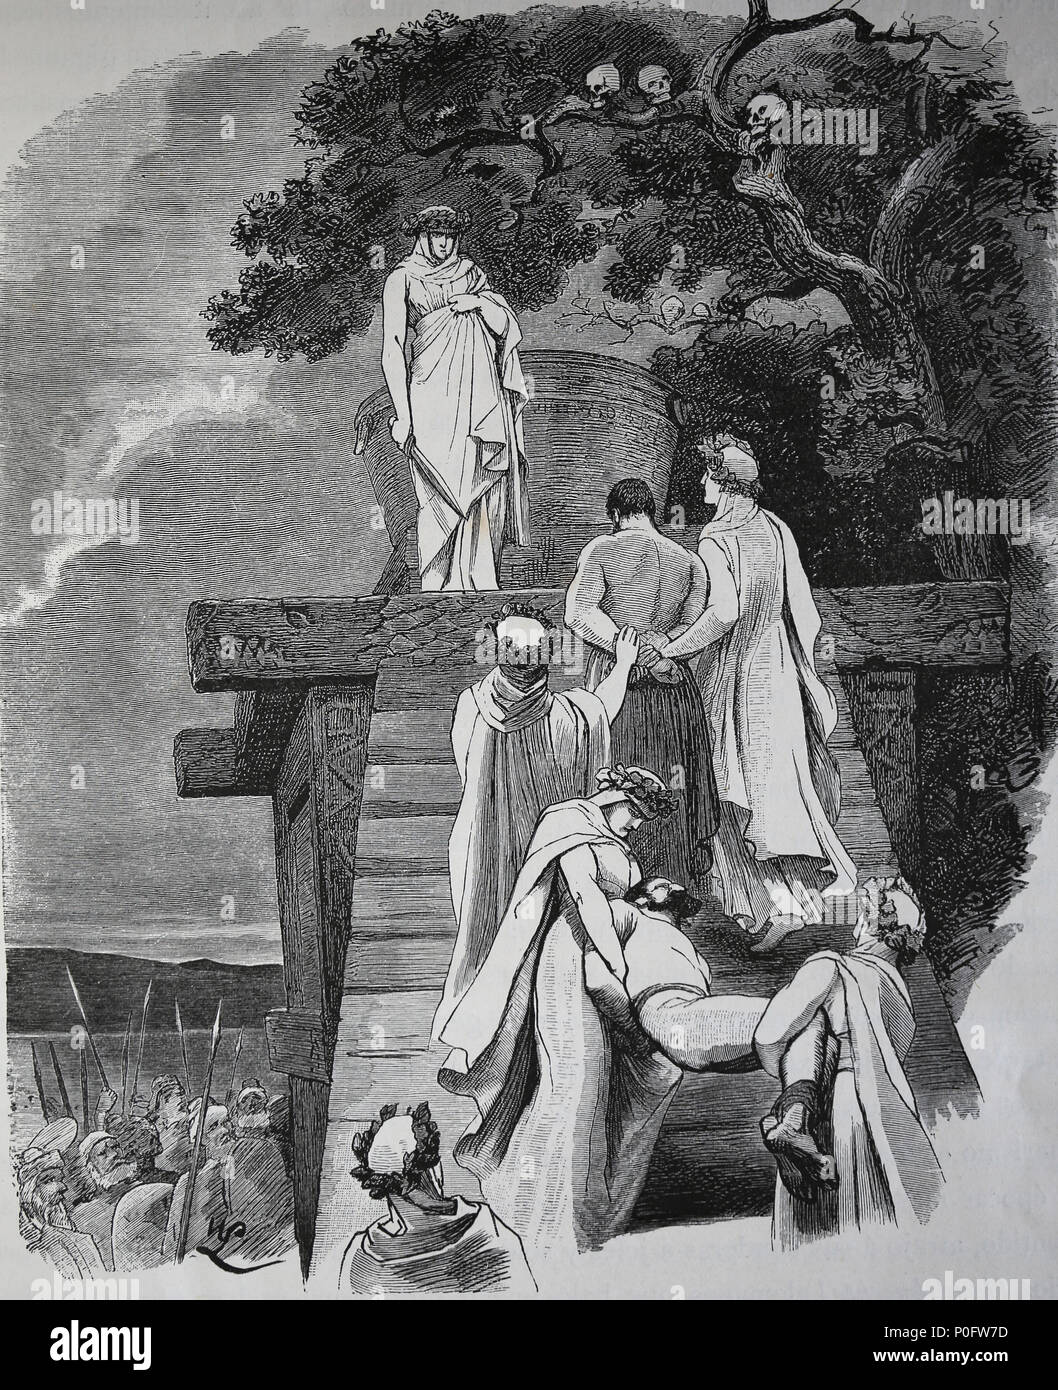 """Human sacrifice in ancient Germany. Engraving, 1882 of """"Germania"""". Stock Photo"""